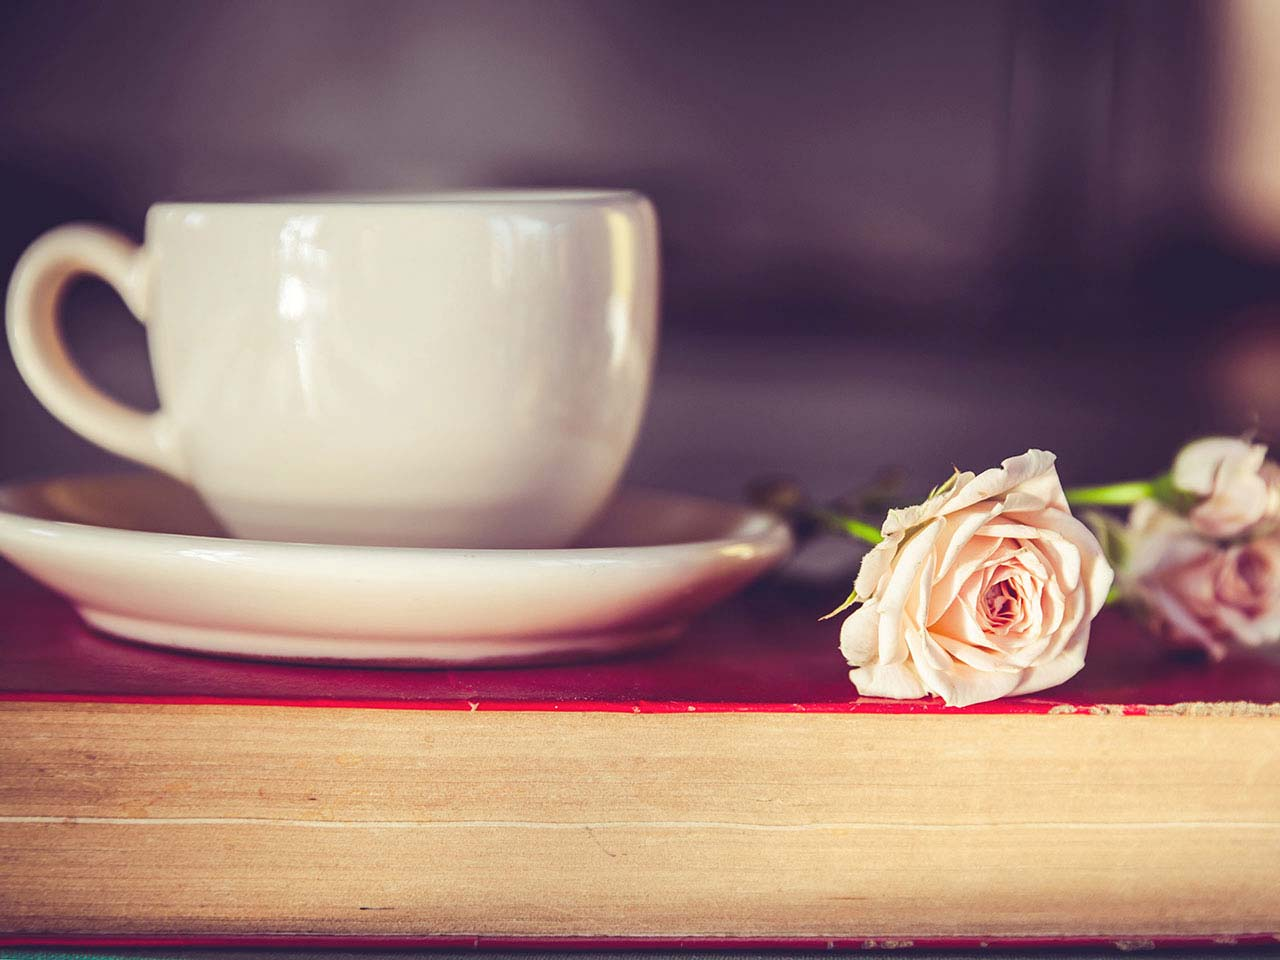 A rose, cup of coffee on an old book